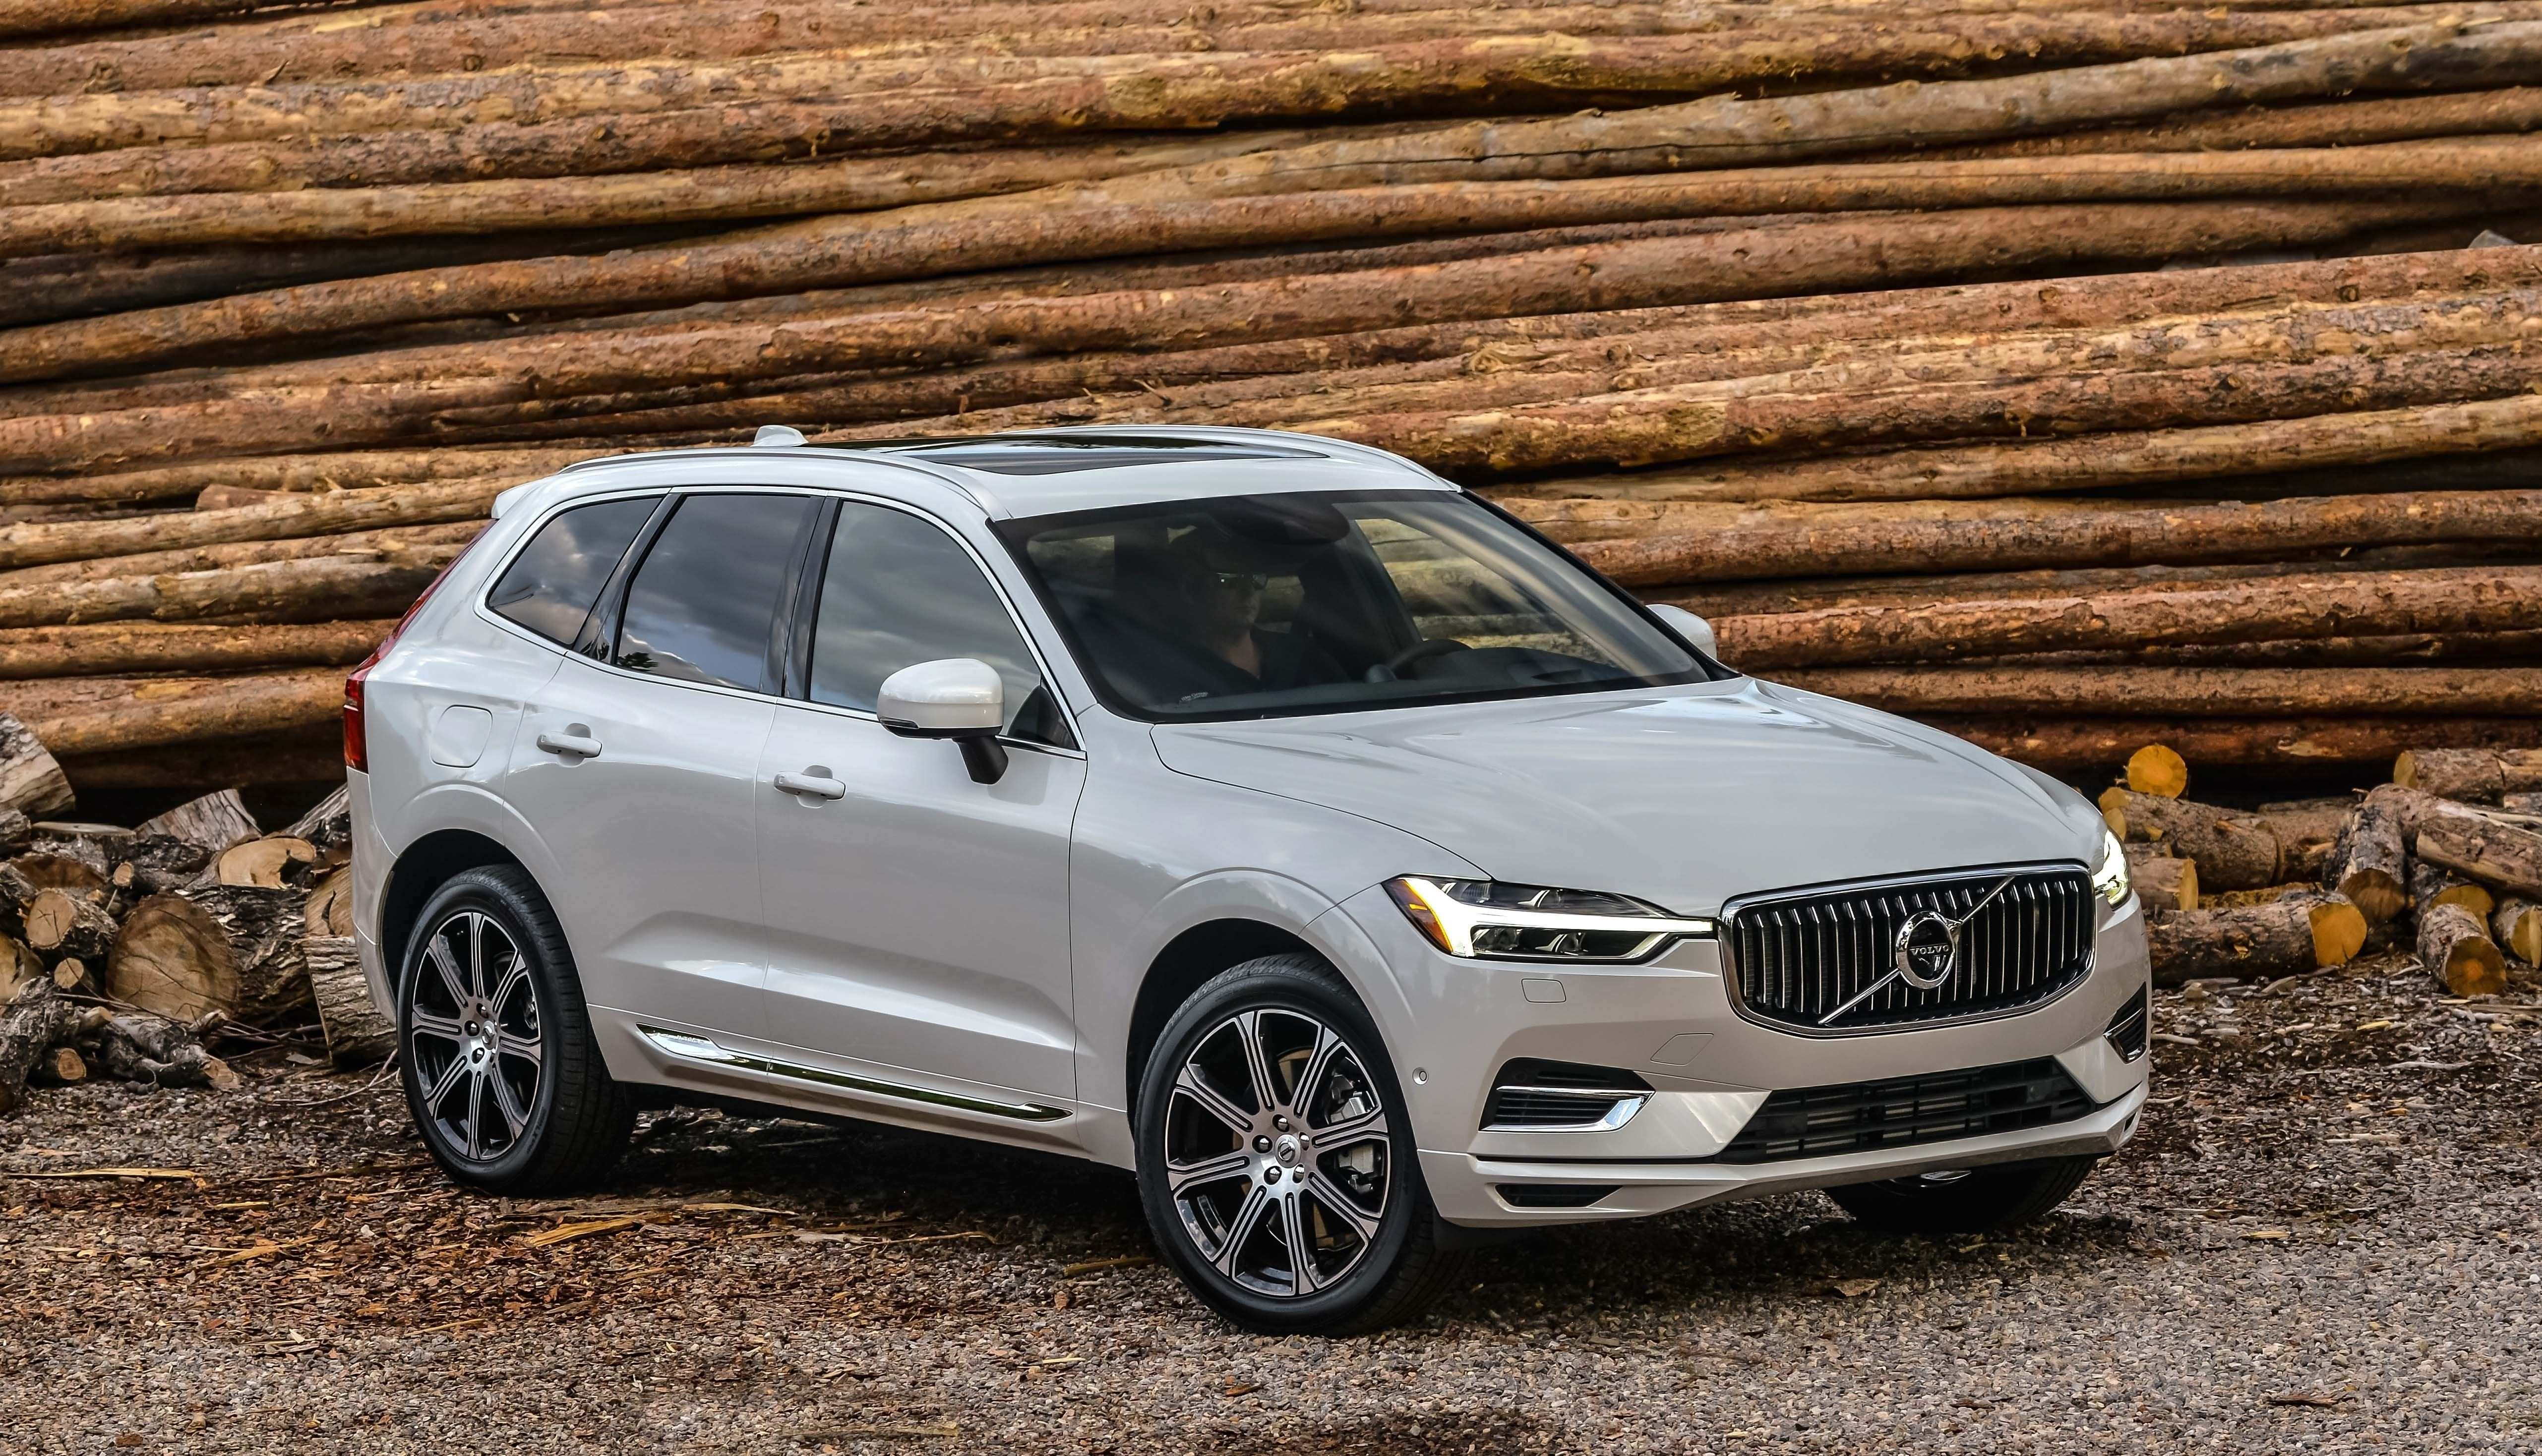 15 Concept of 2020 Volvo XC60 Price and Review for 2020 Volvo XC60